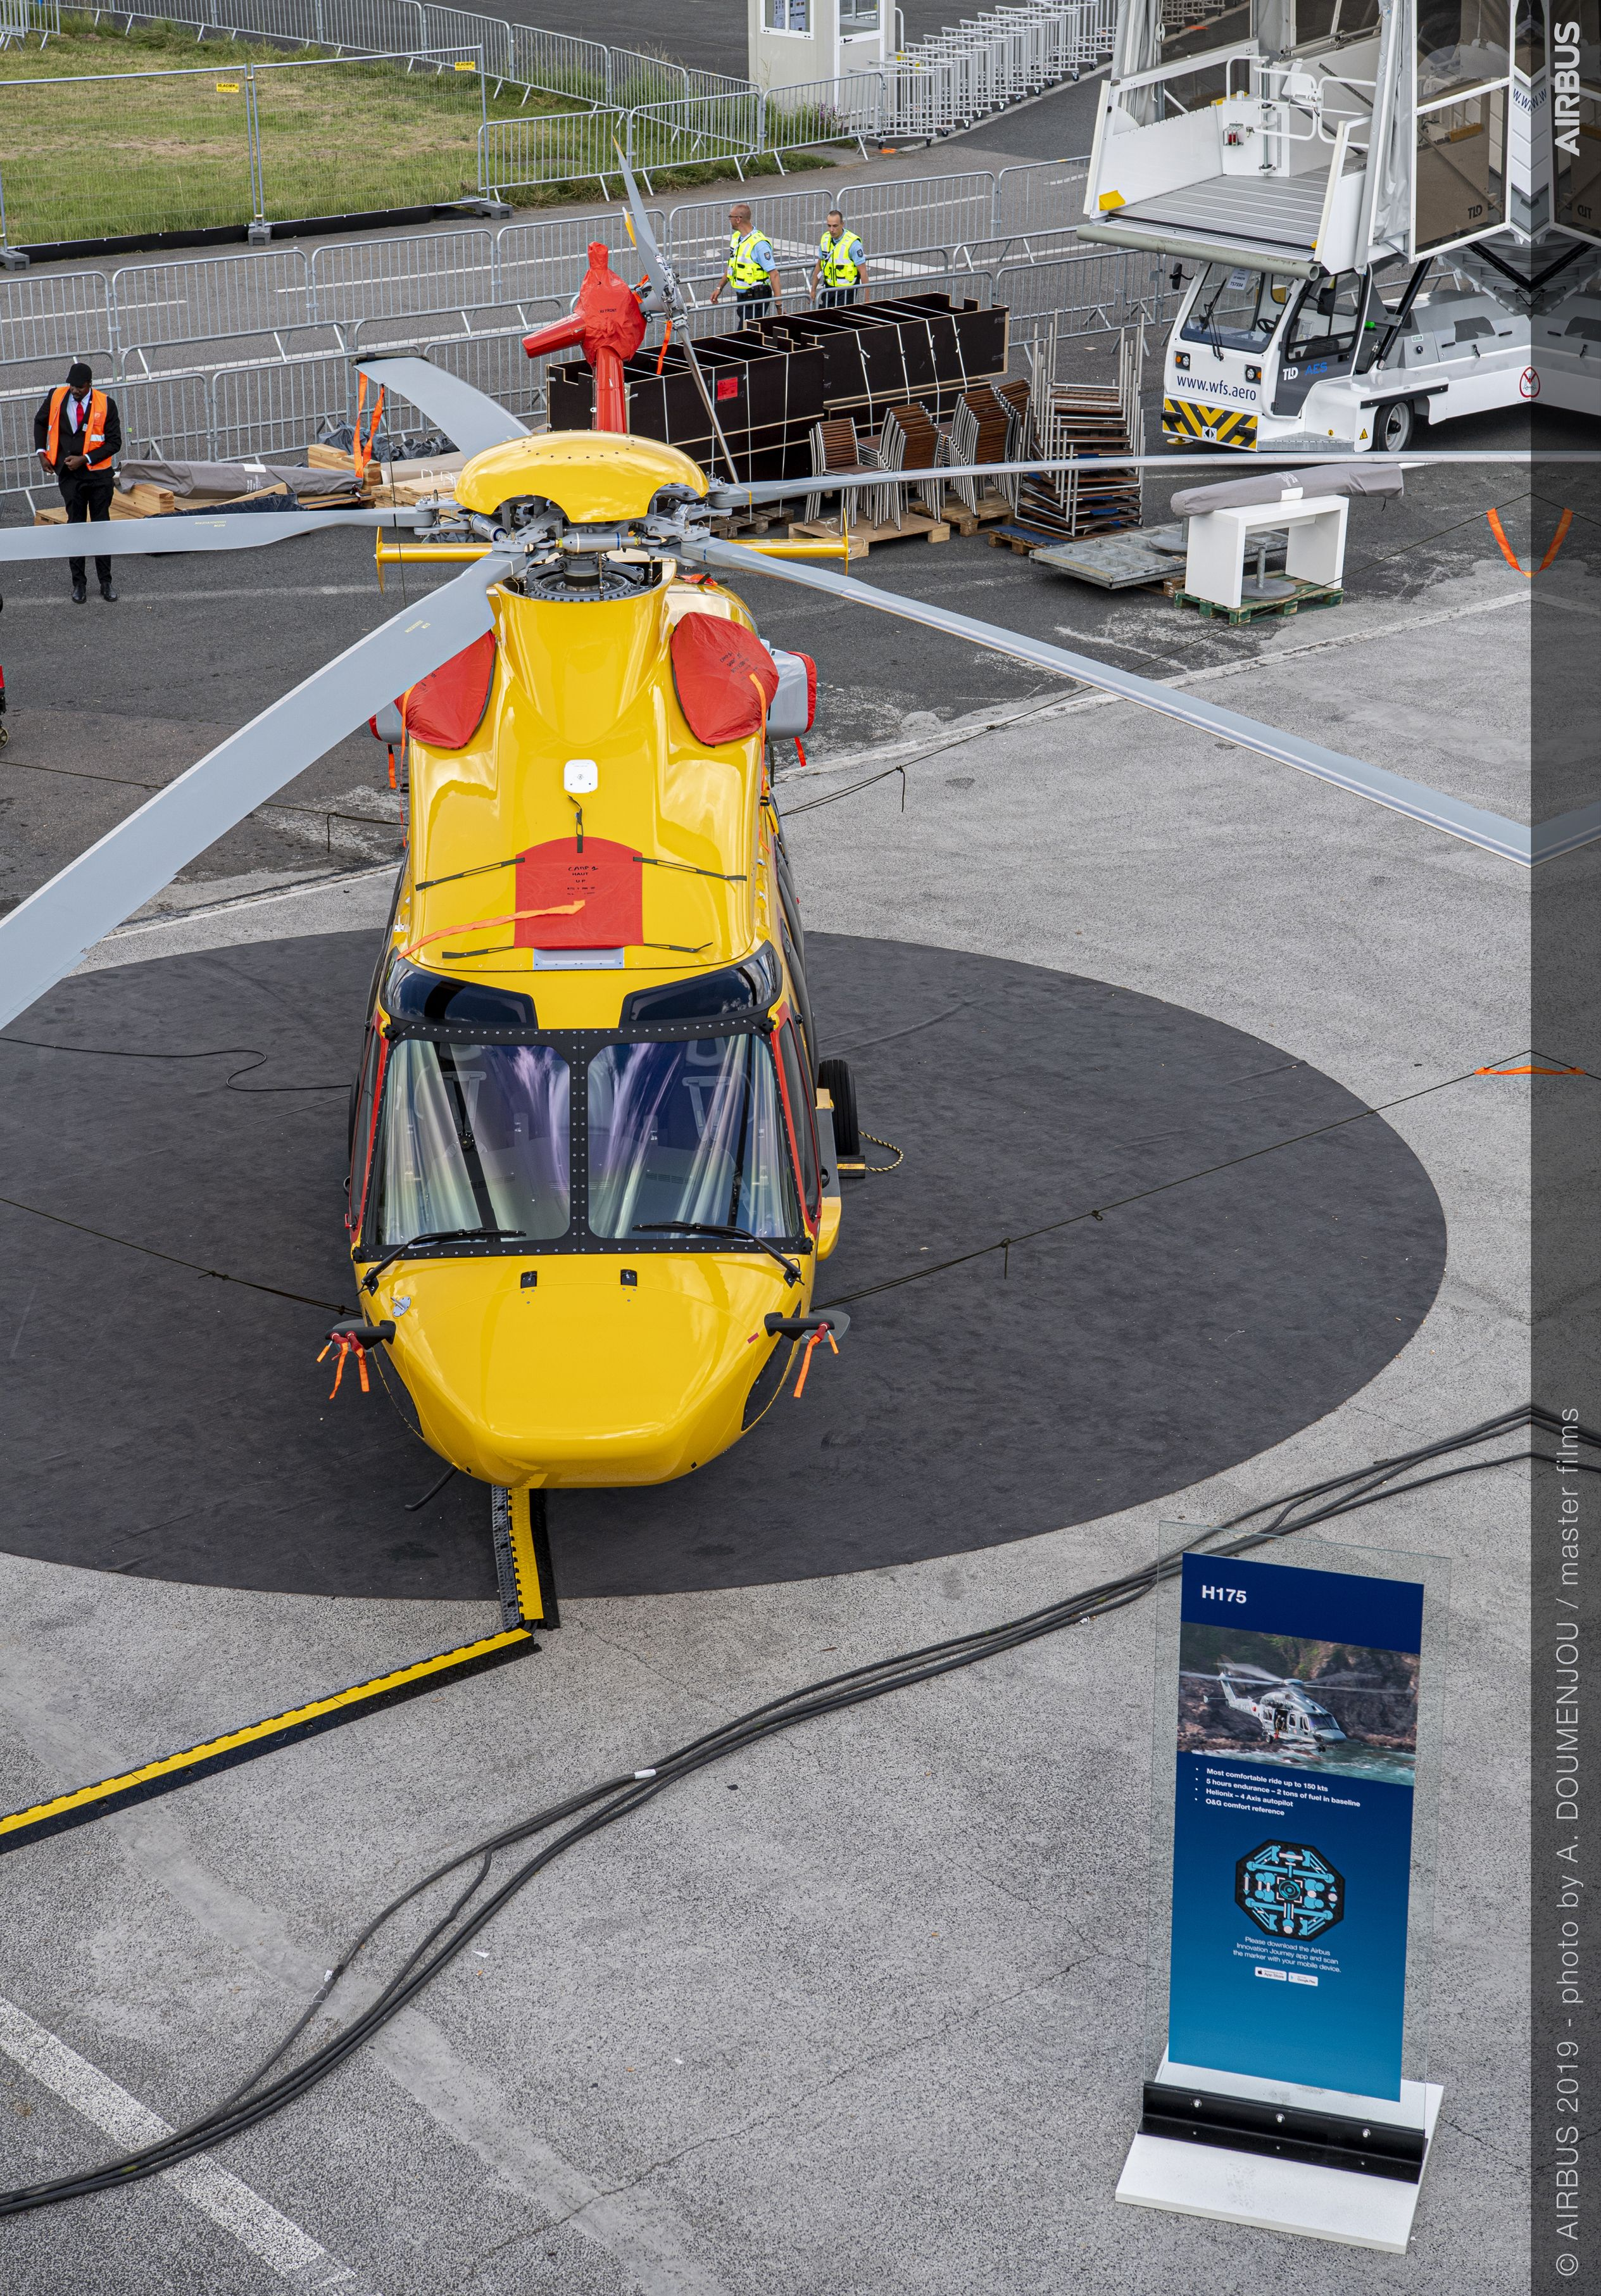 Civil Helicopters - Helicopters - Airbus